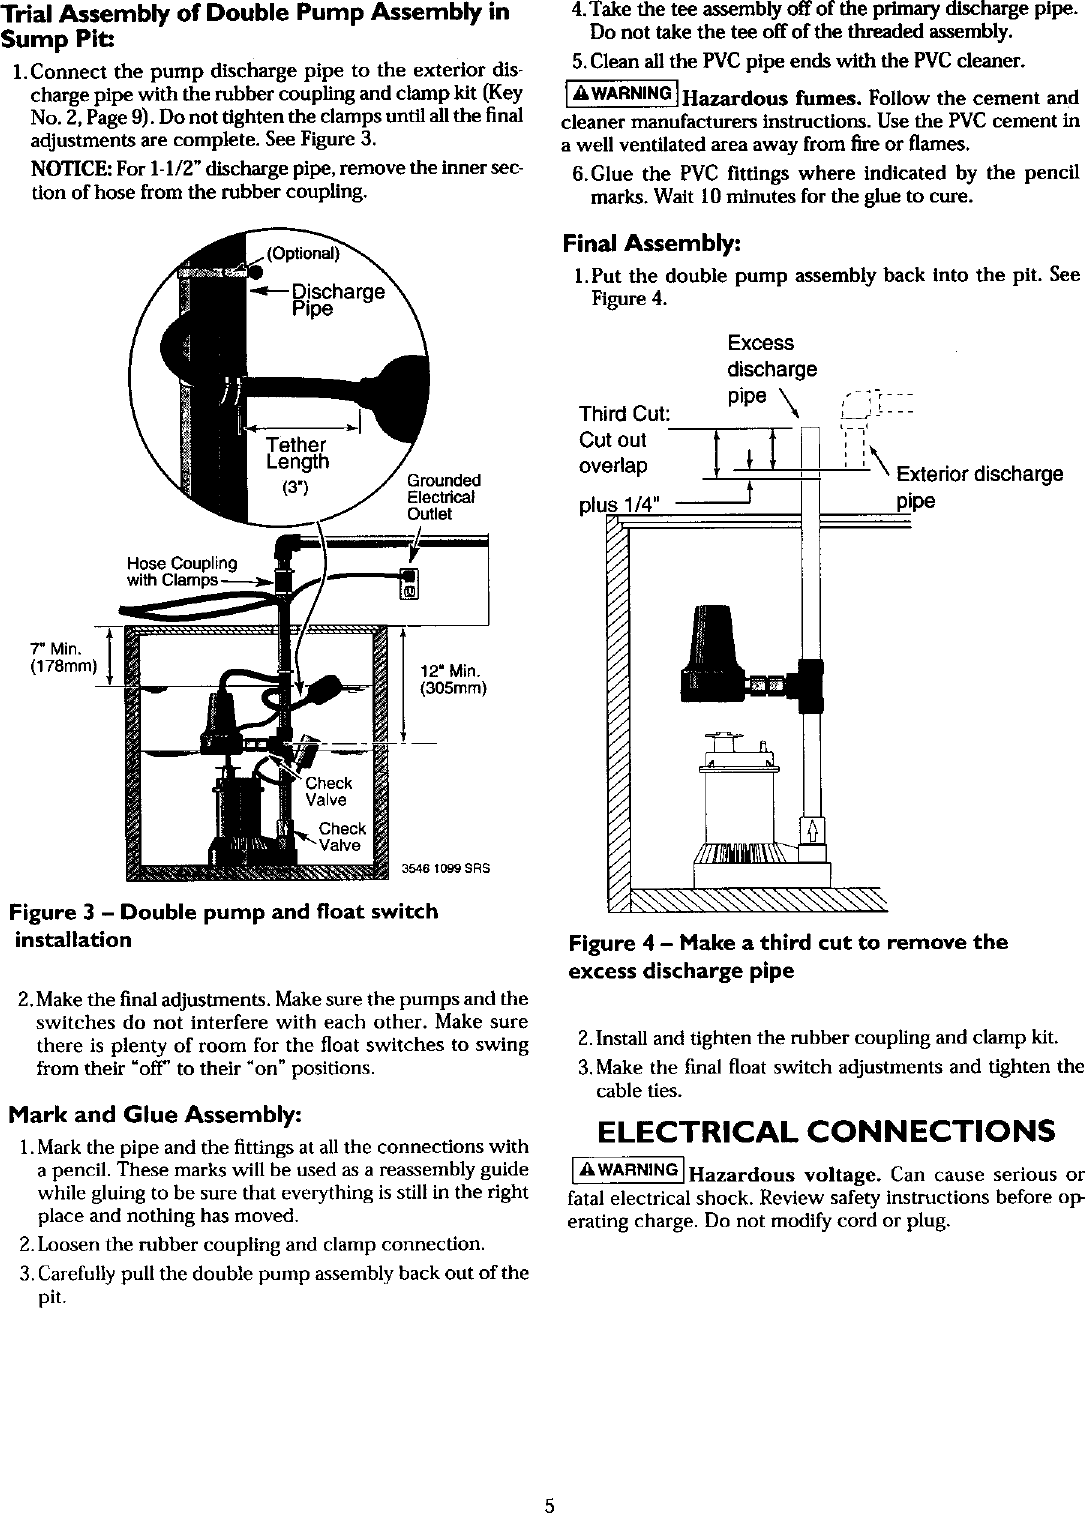 Craftsman 390307060 user manual backup sump pump manuals and page 5 of craftsman 390307060 user manual backup sump pump manuals and guides l0408275 sciox Gallery